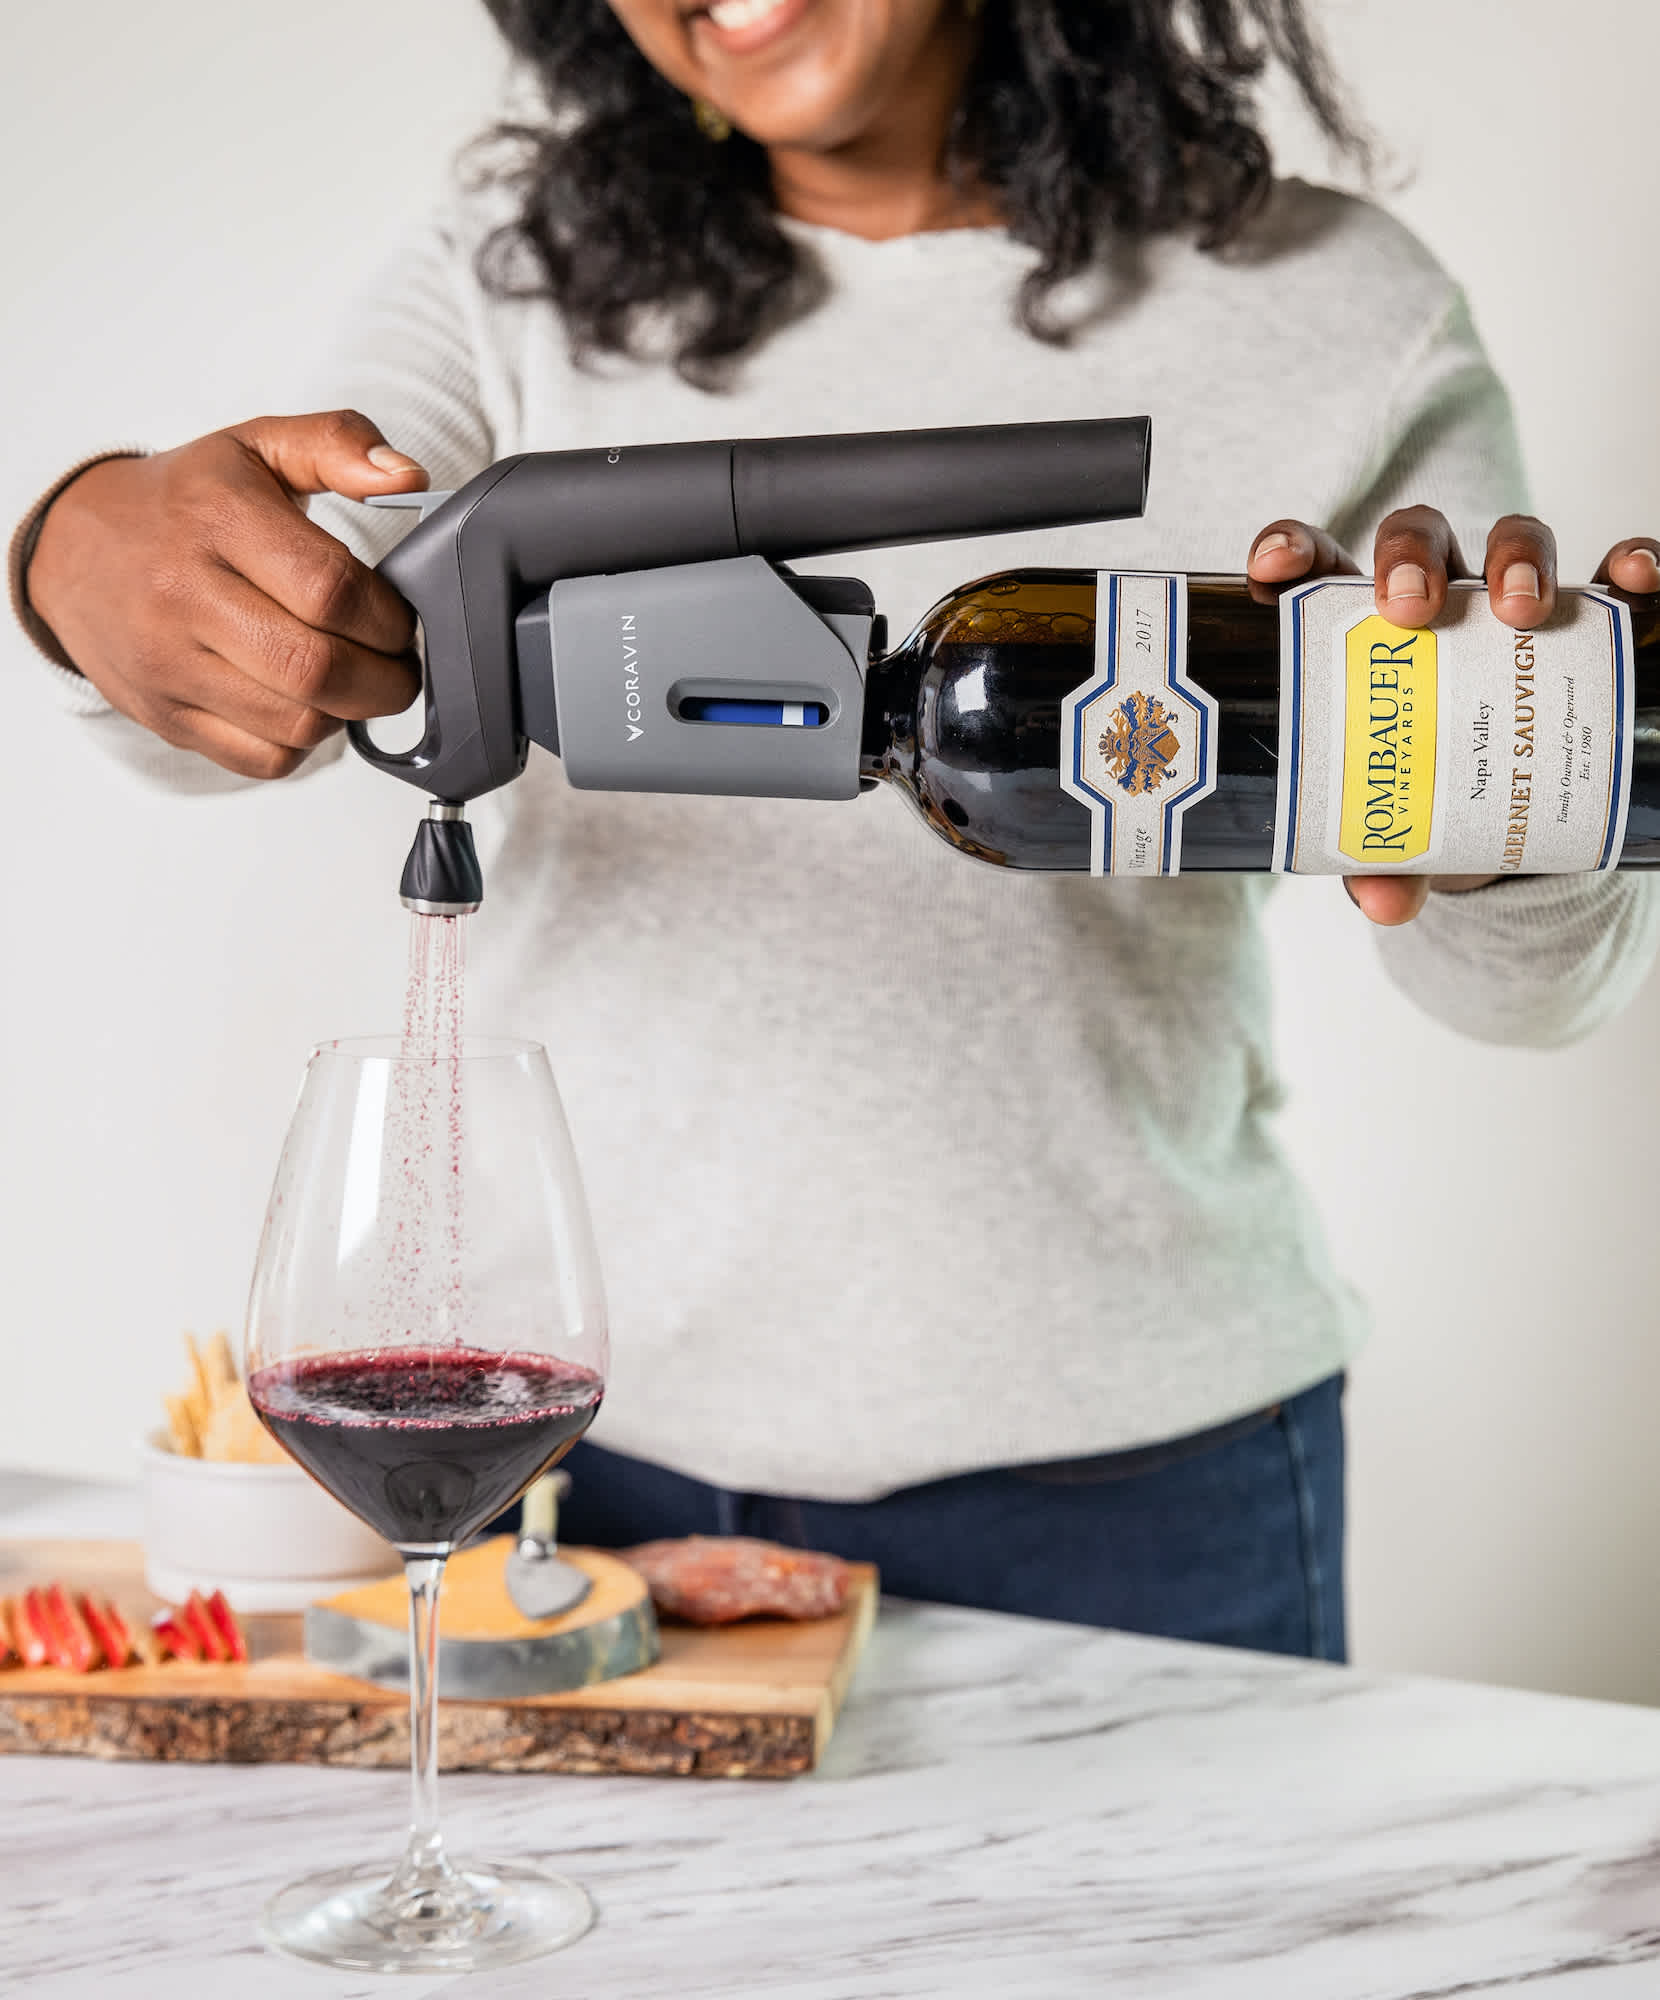 Why Aerate Wine and What Does a Wine Aerator Do?